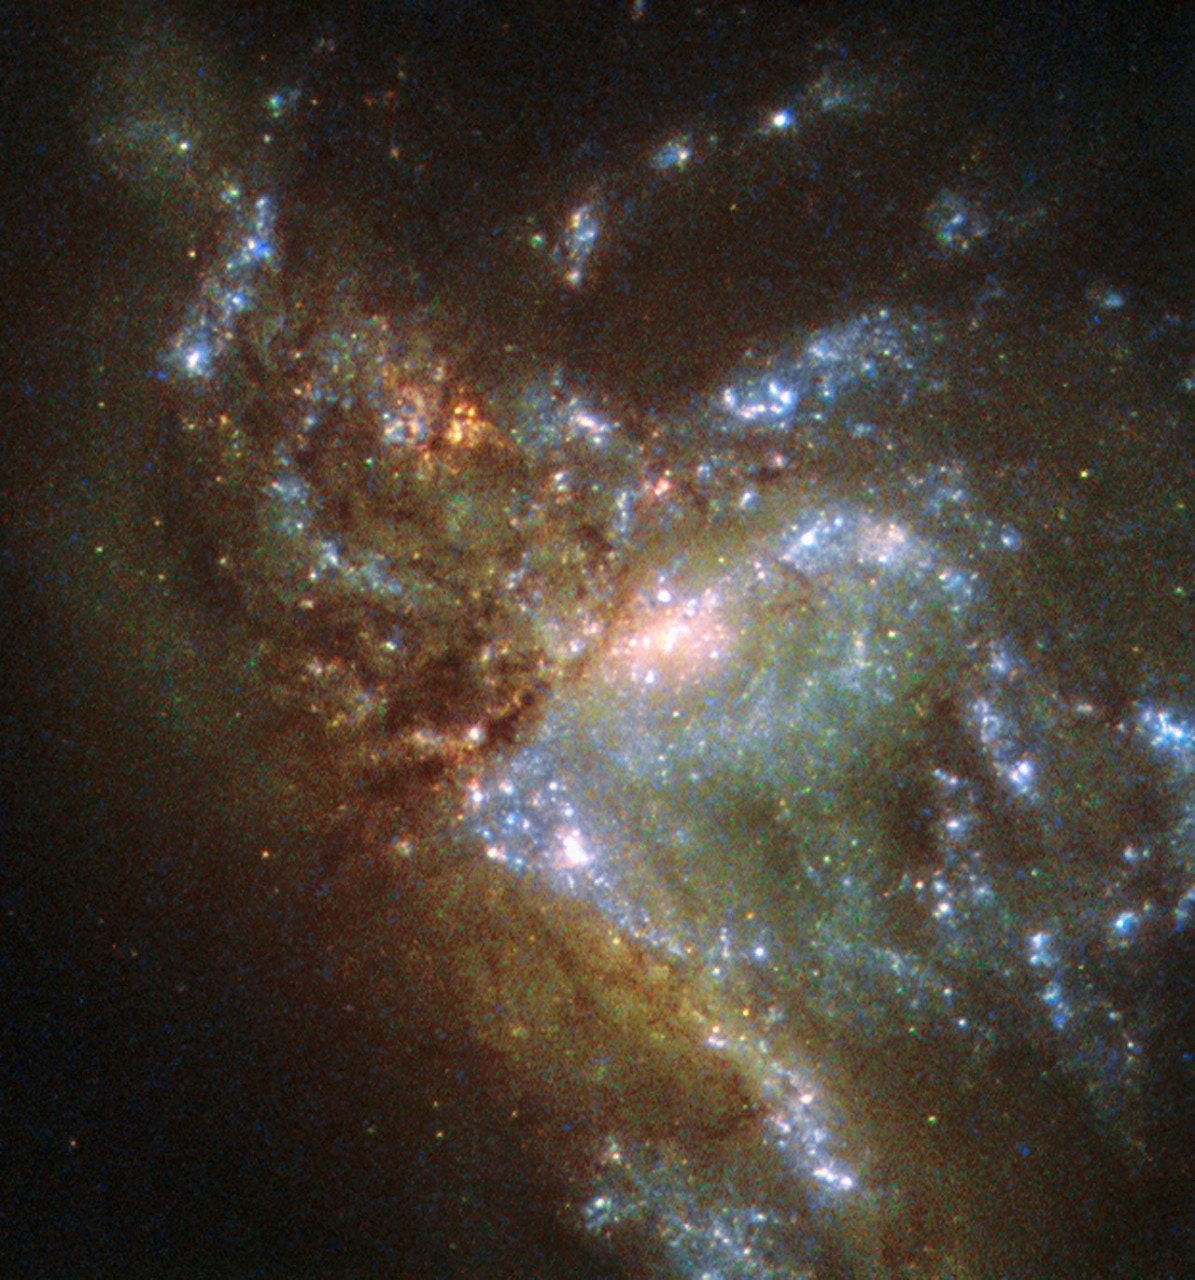 Stunning Hubble image shows two galaxies merging | Fox News